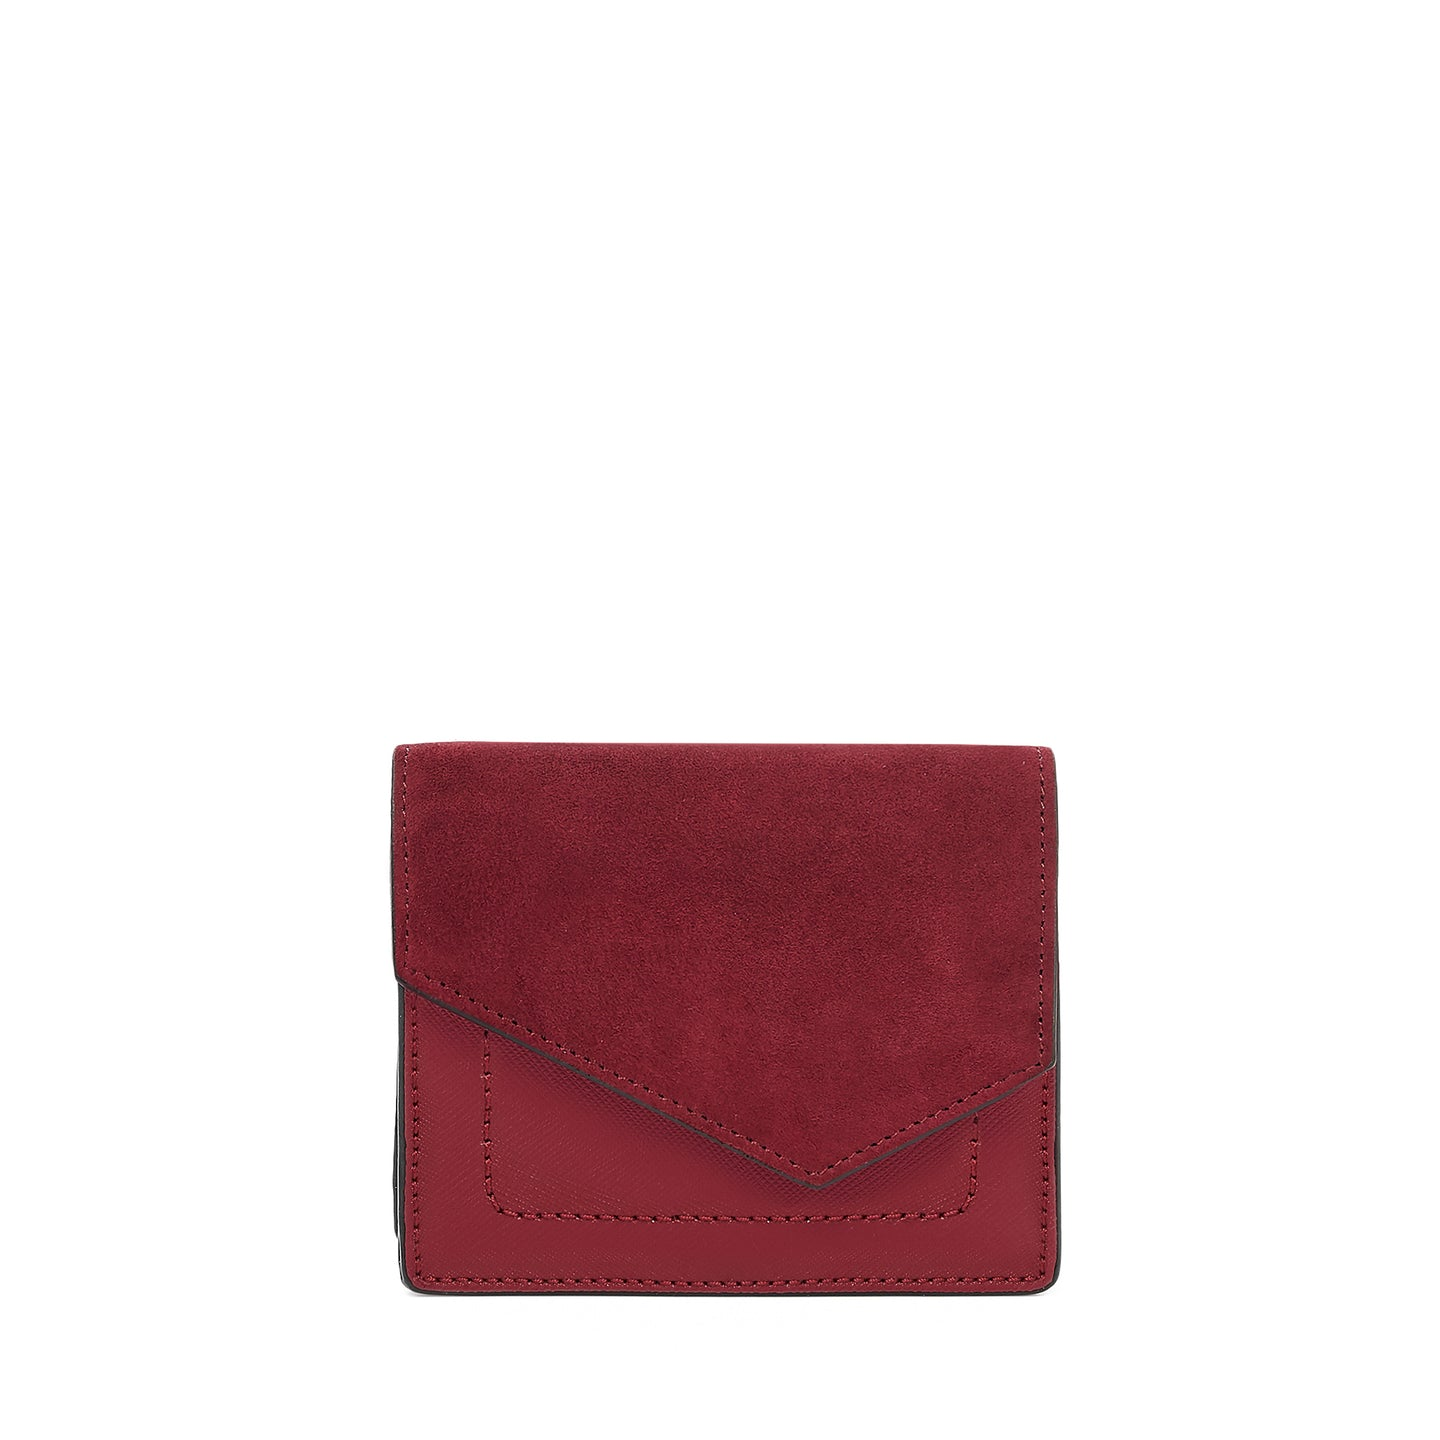 botkier cobble hill mini wallet in bordeaux red